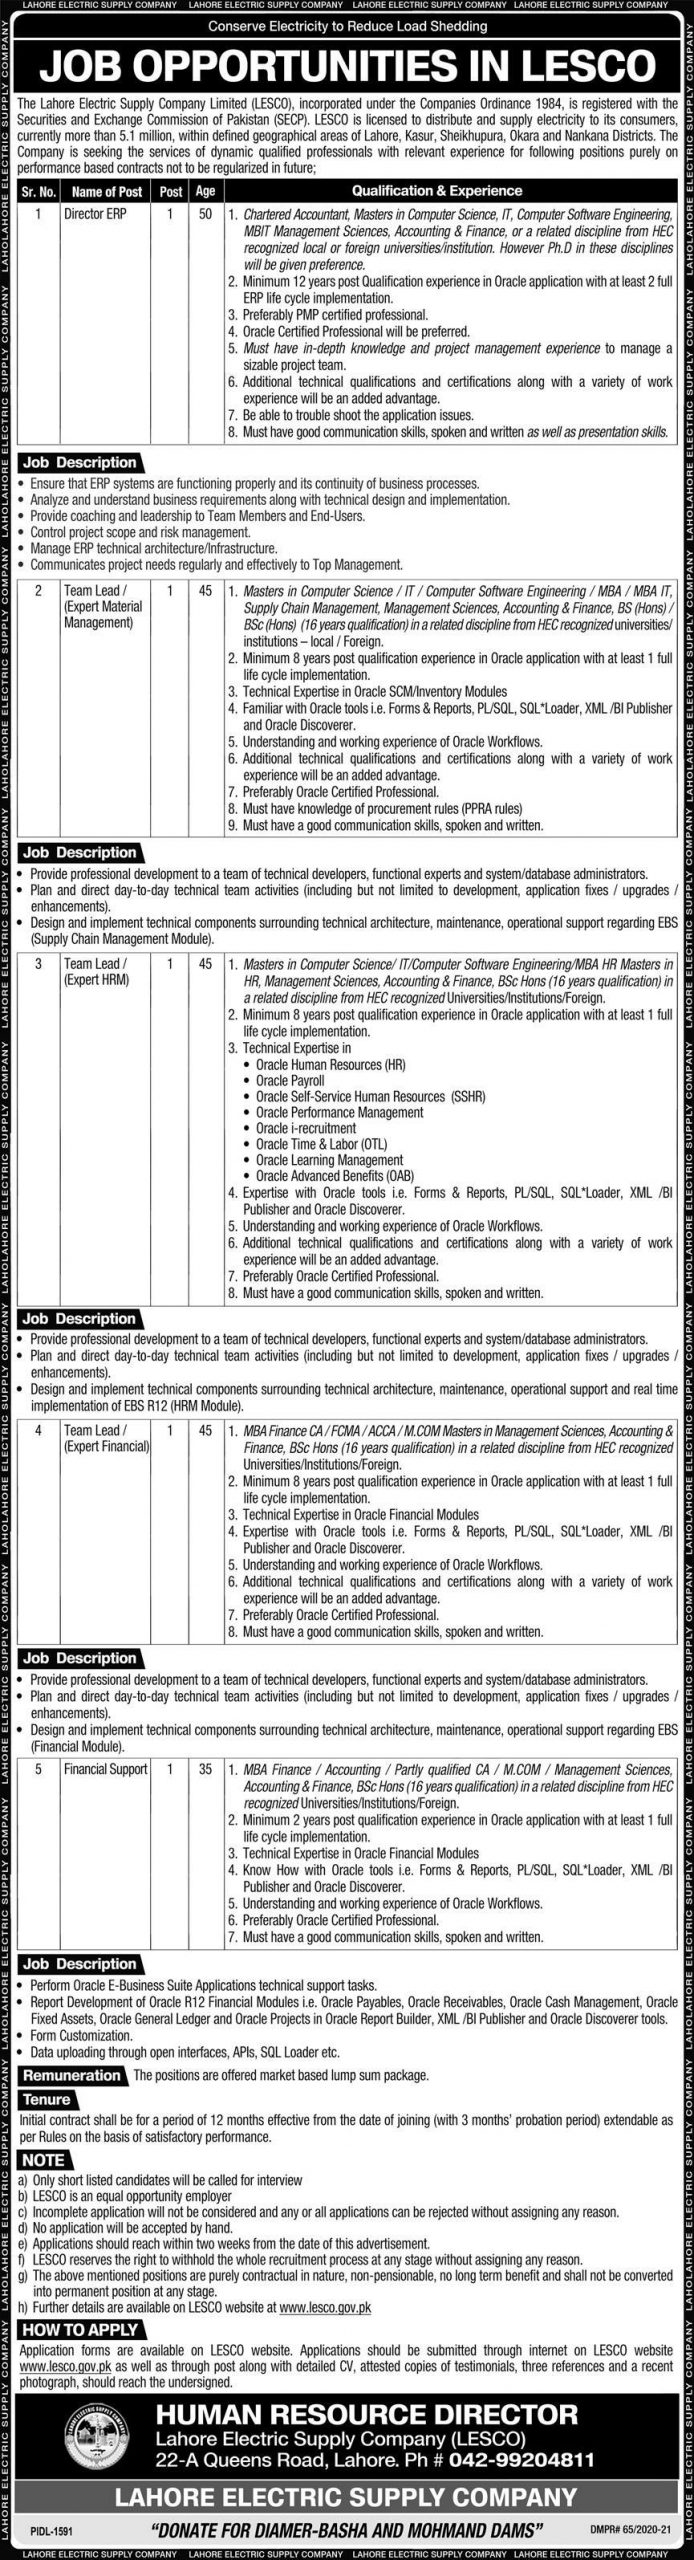 LESCO Wapda Jobs December 2020